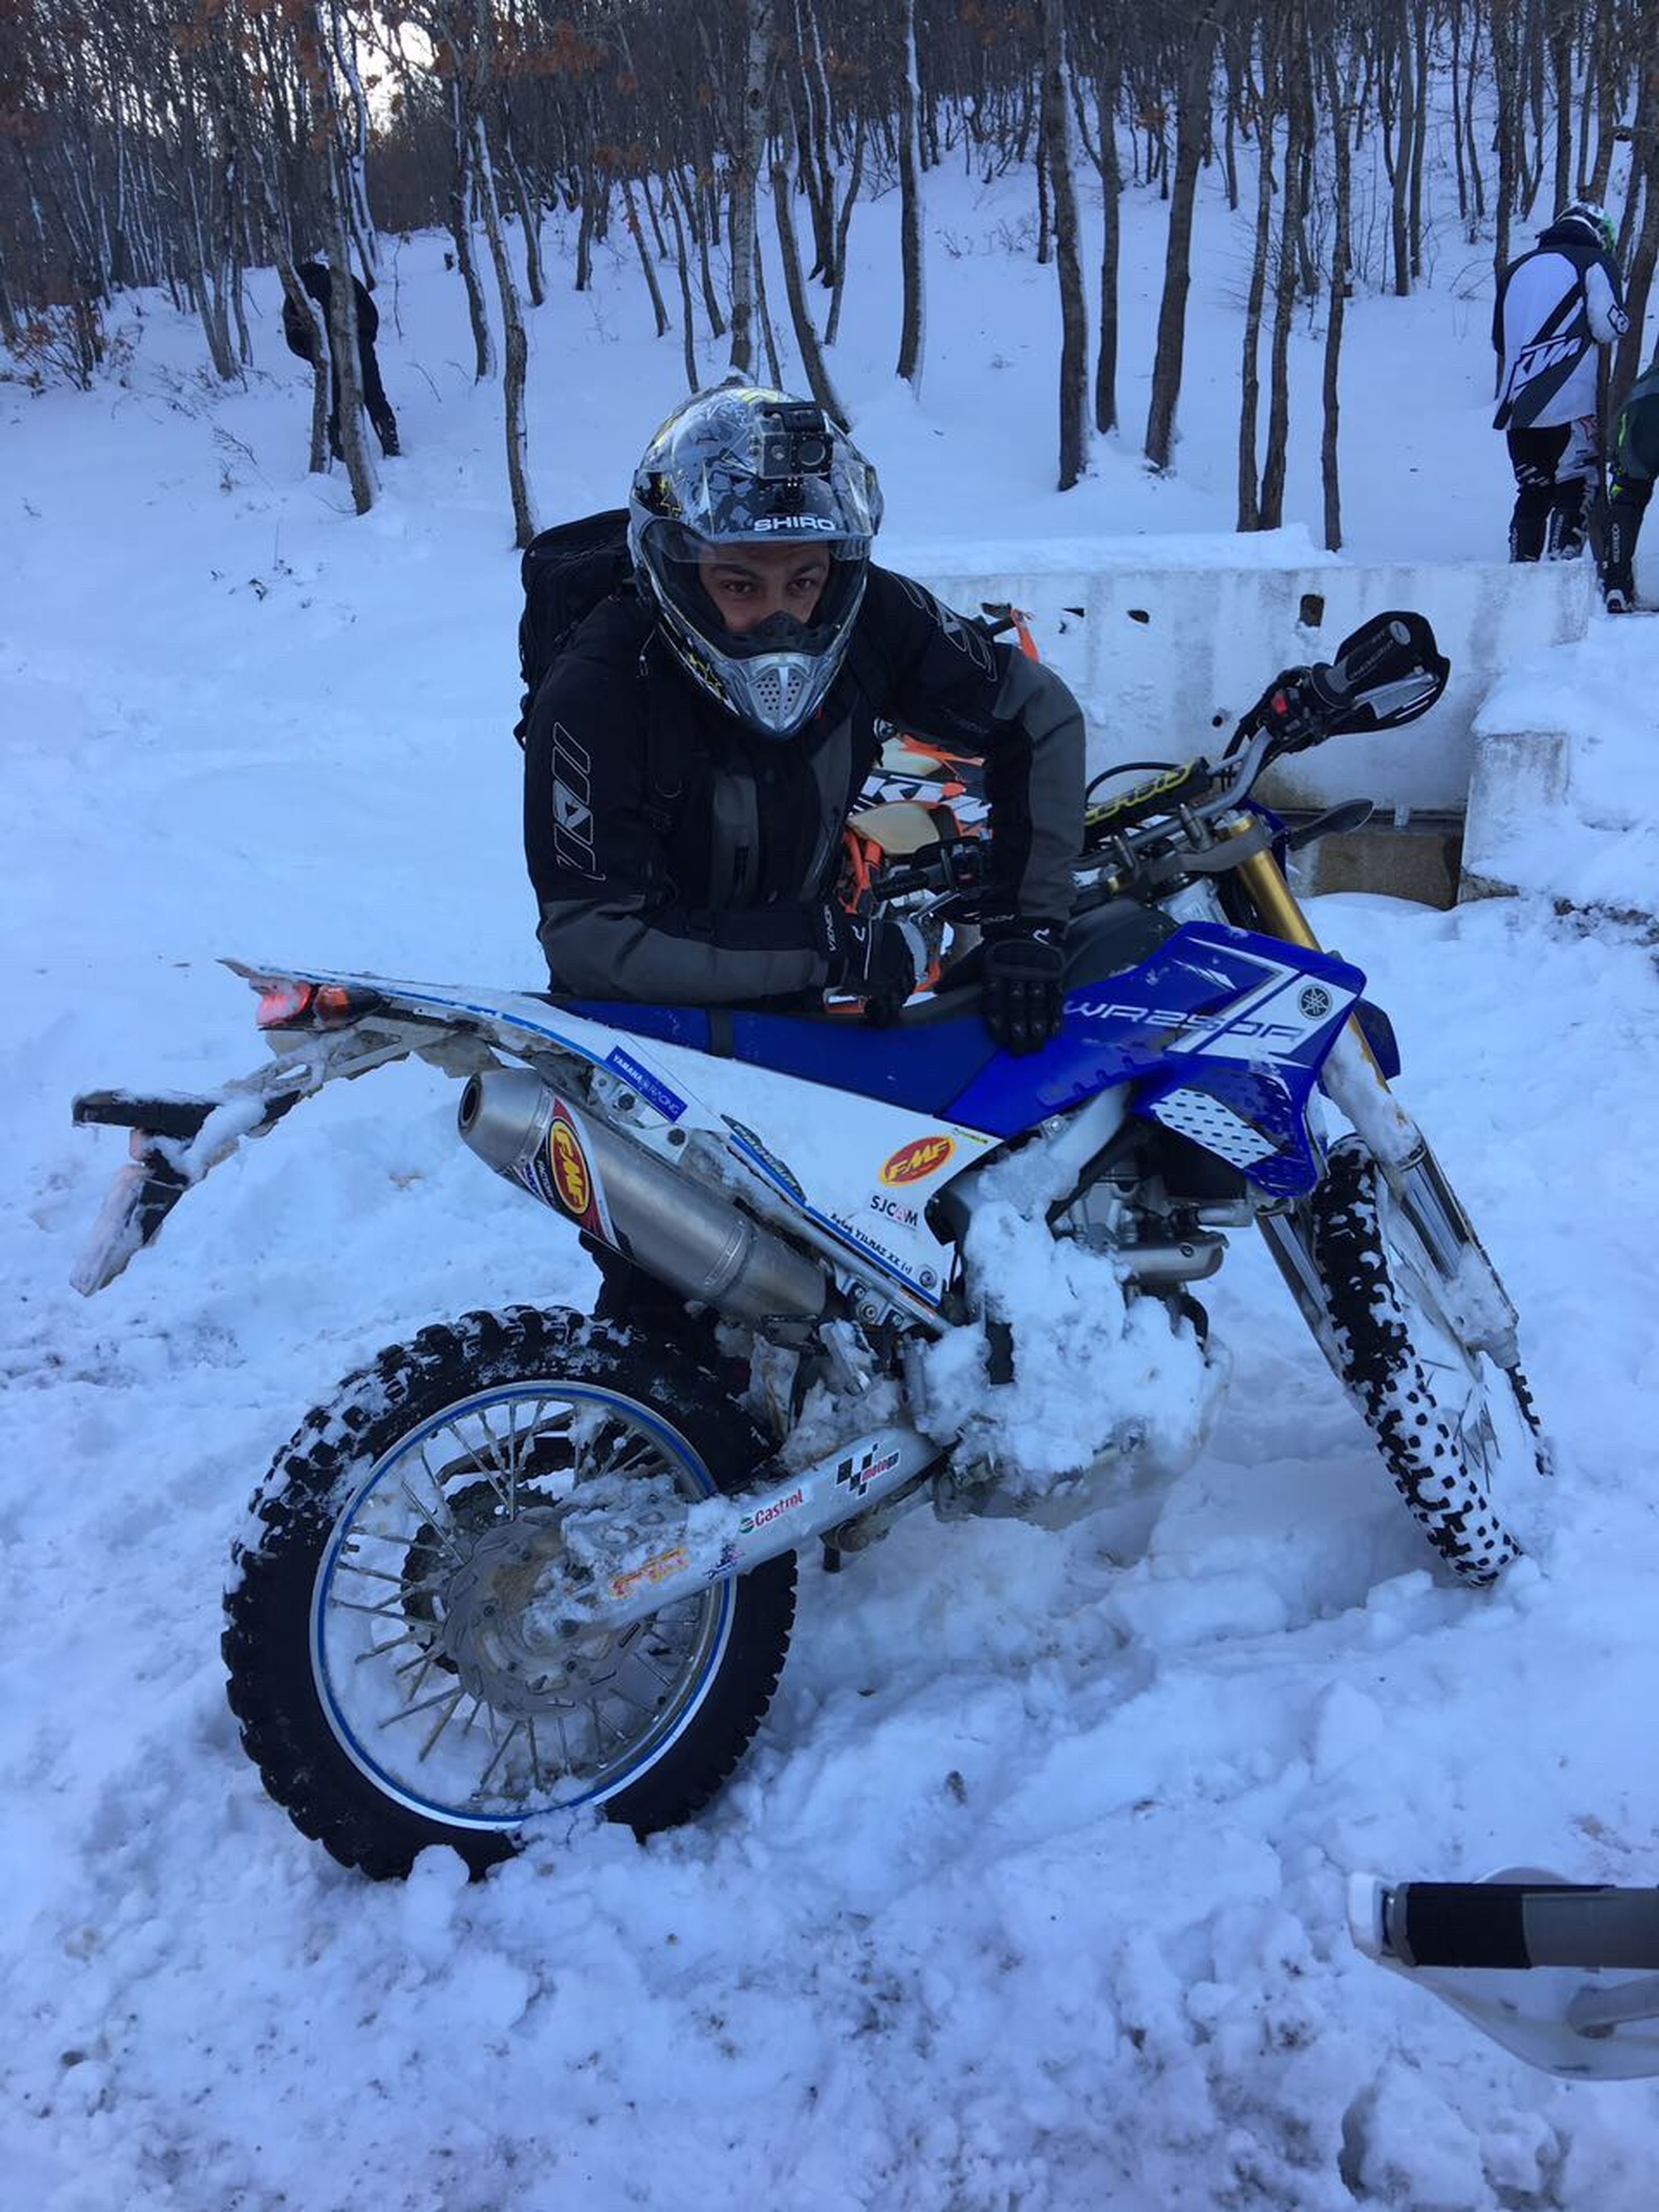 winter, snow, one person, cold temperature, one man only, adventure, only men, leisure activity, adults only, outdoors, sport, people, adult, day, extreme sports, vacations, human body part, snowboarding, human hand